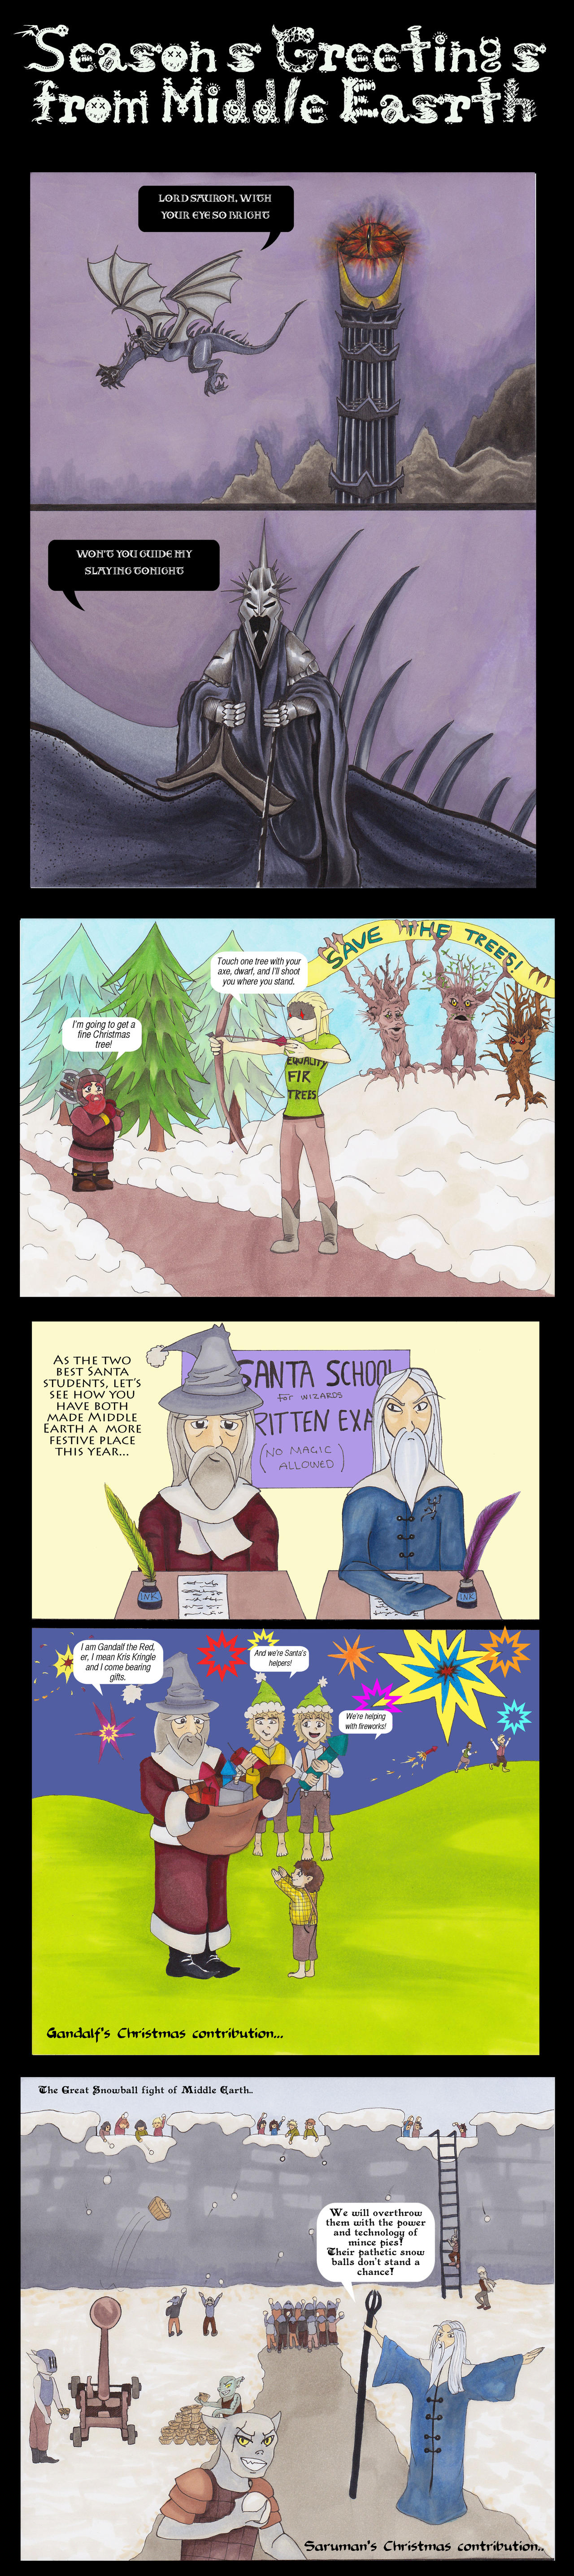 Christmas in Middle Earth..? by Dragon-flame13